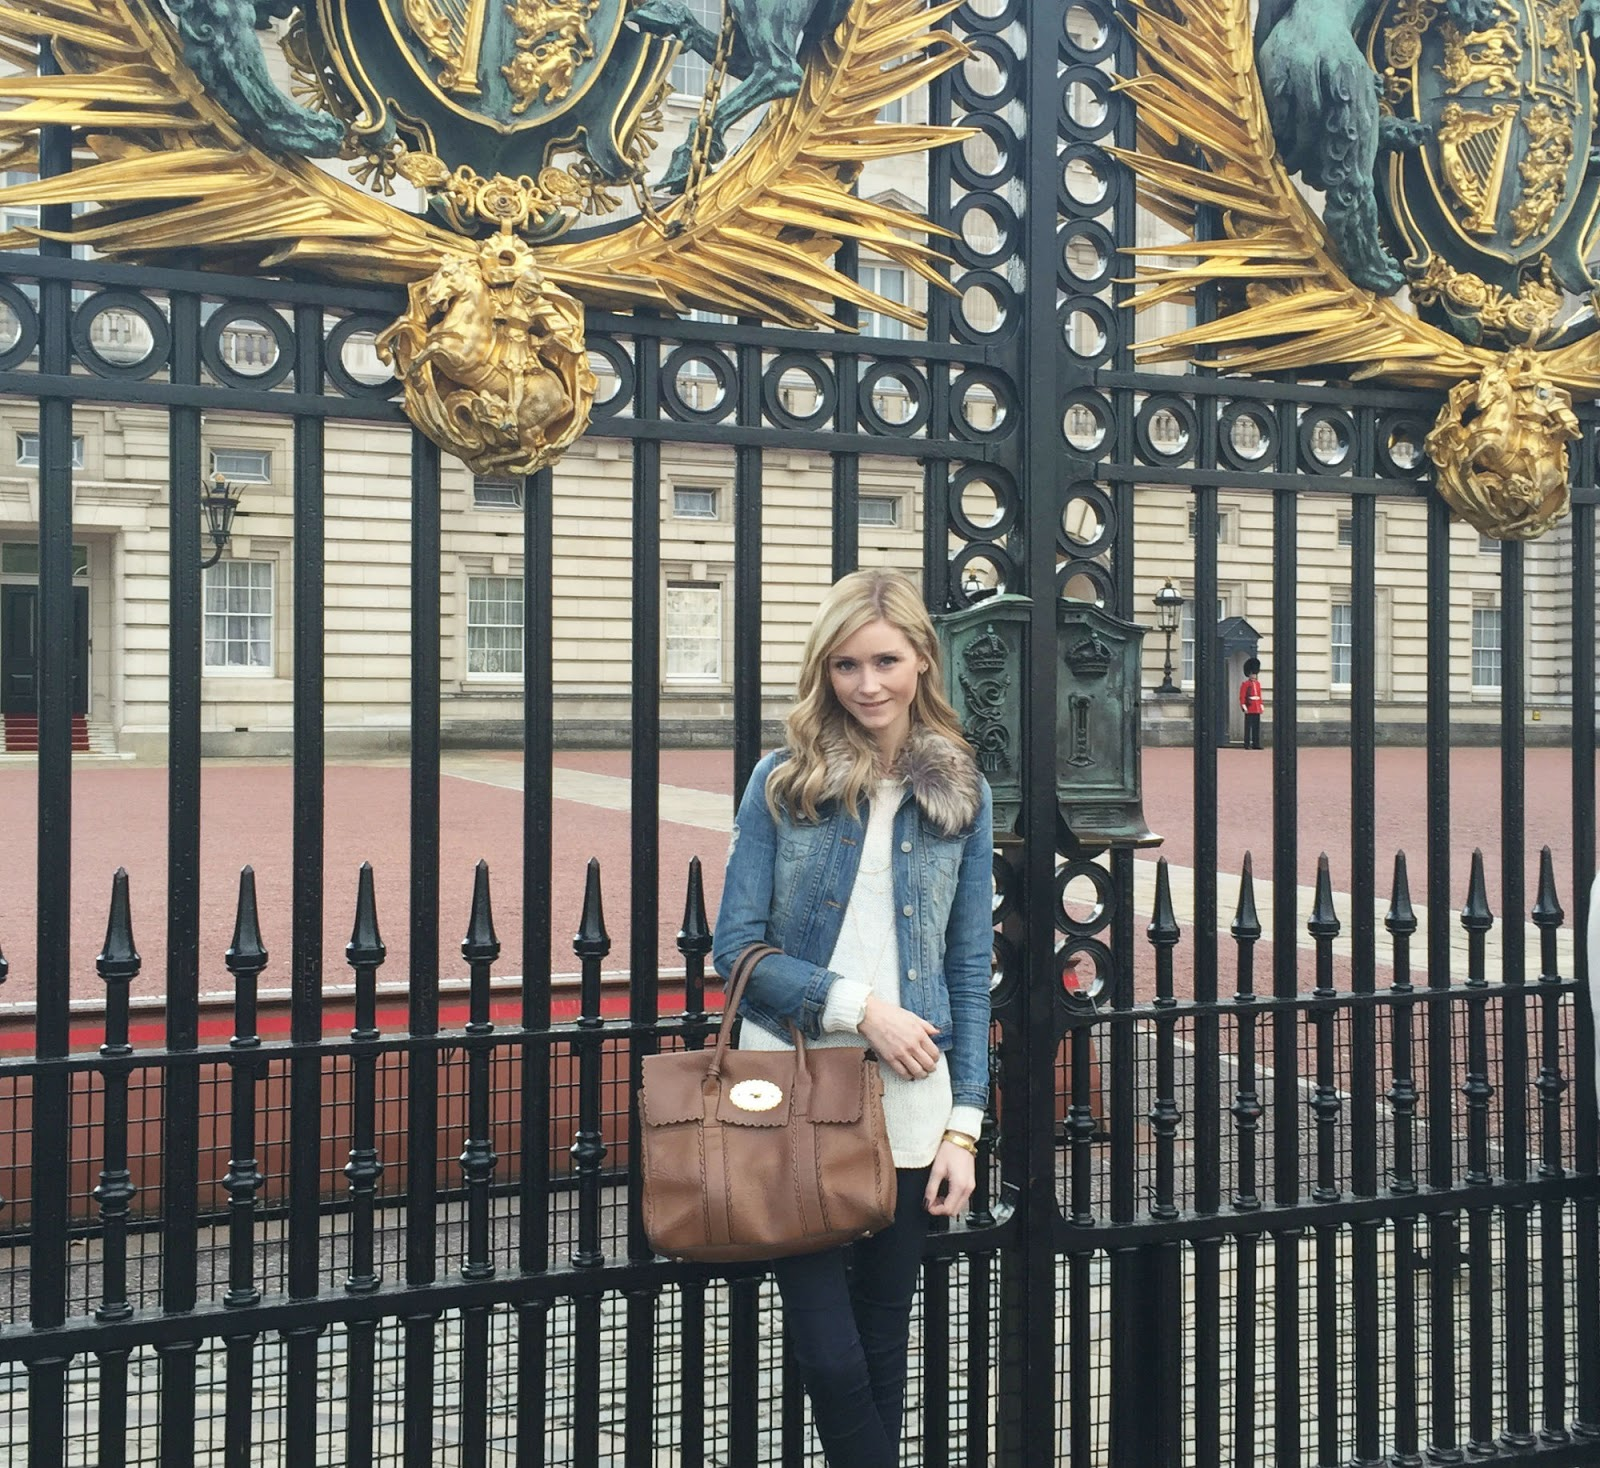 Outside Buckingham Palace Gates